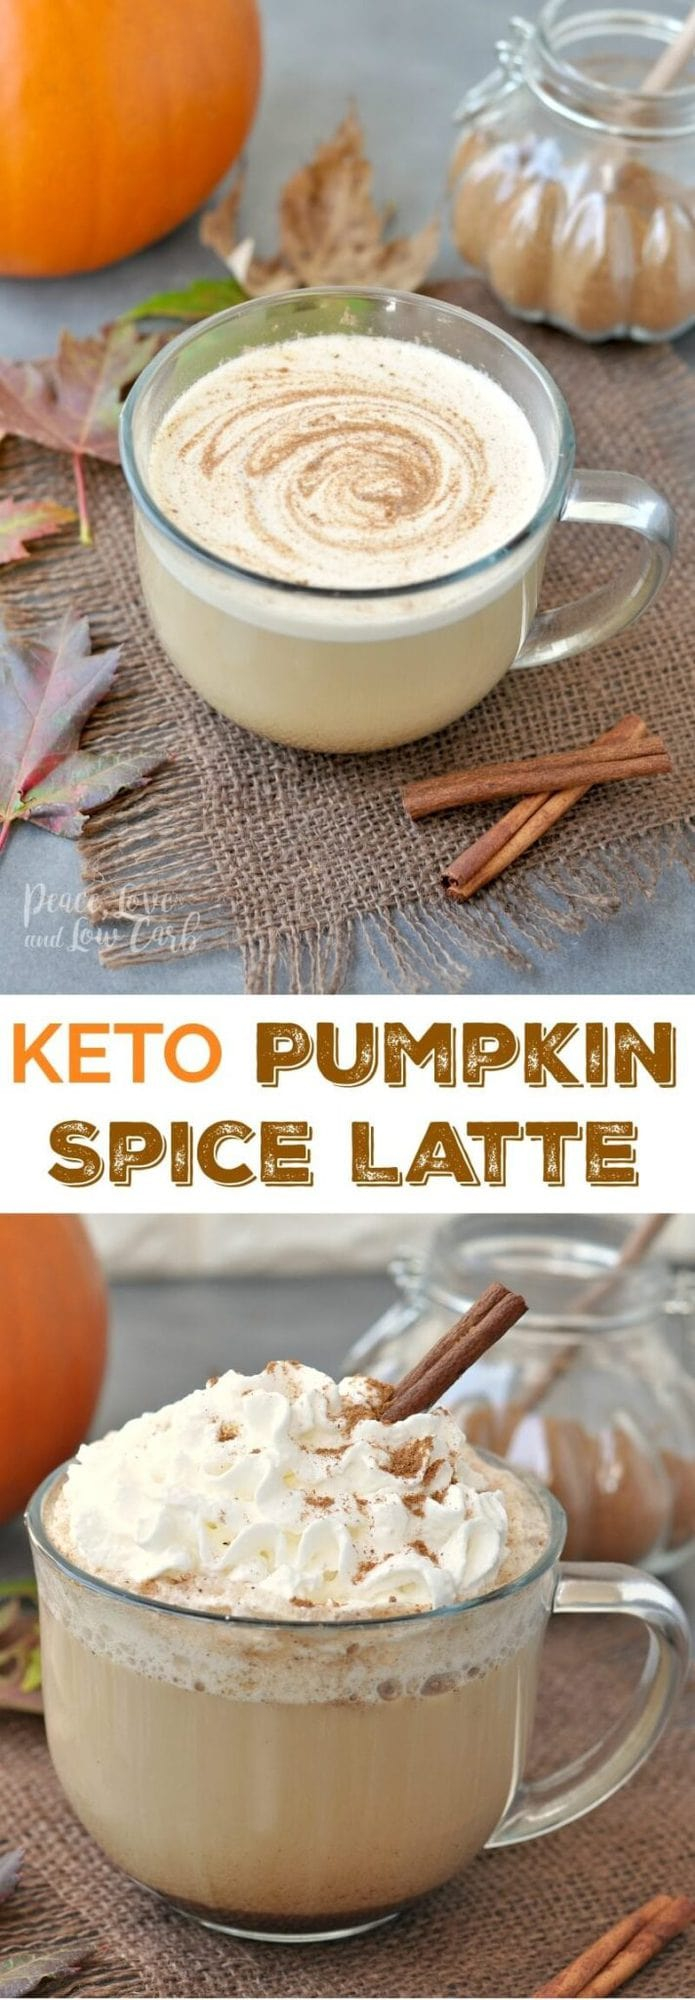 Keto Pumpkin Spice Latte | Peace Love and Low Carb